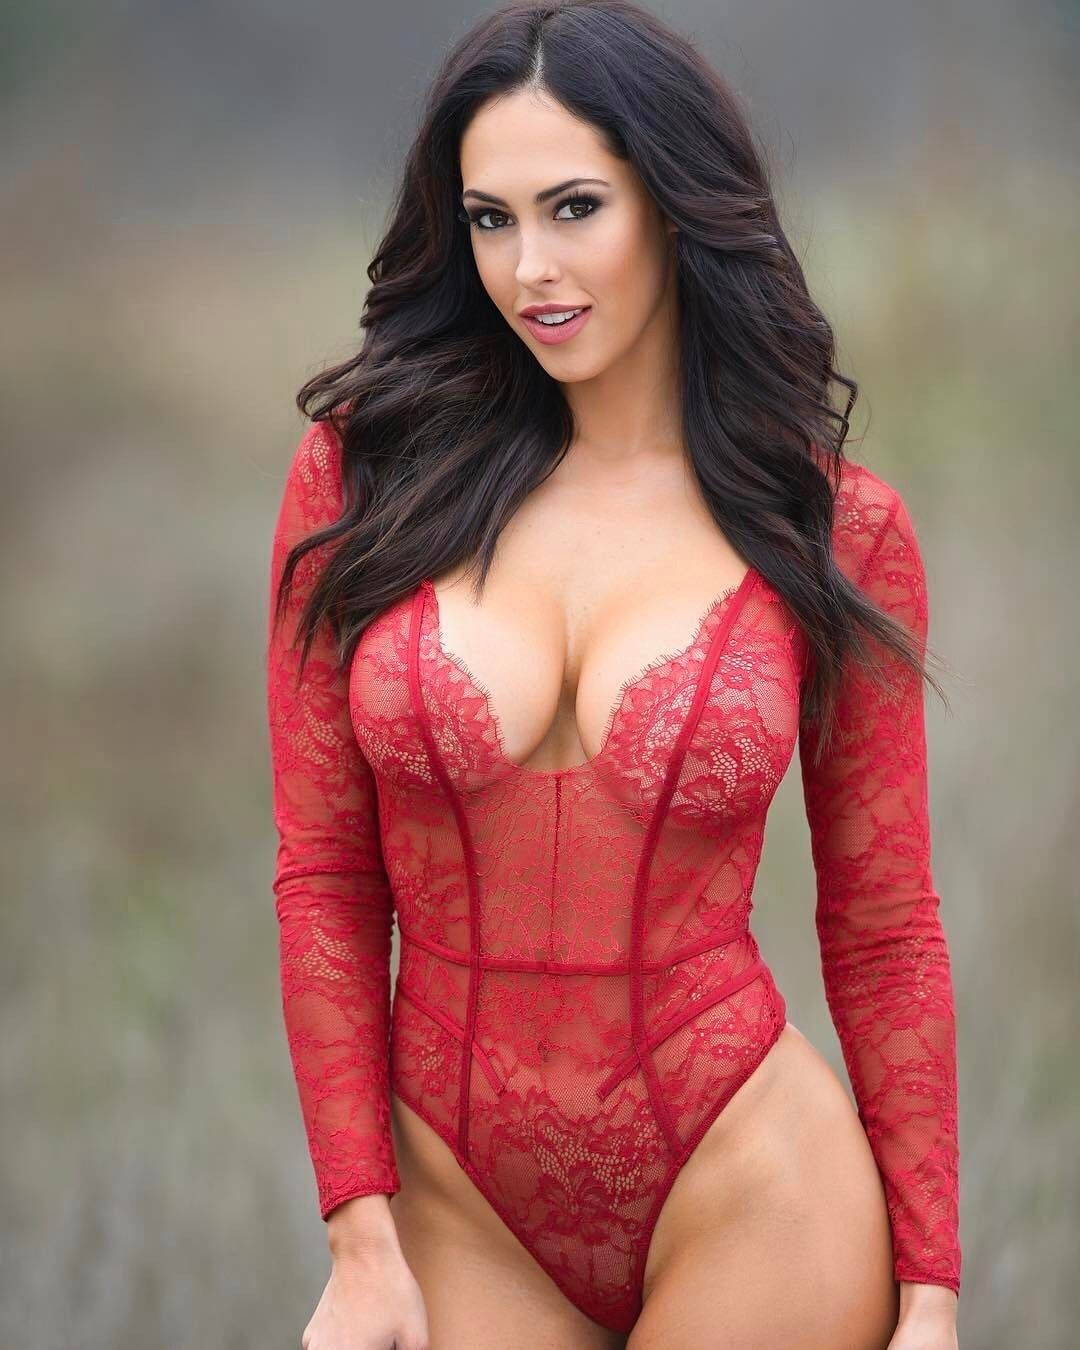 Not Amature wife see through lingerie consider, that